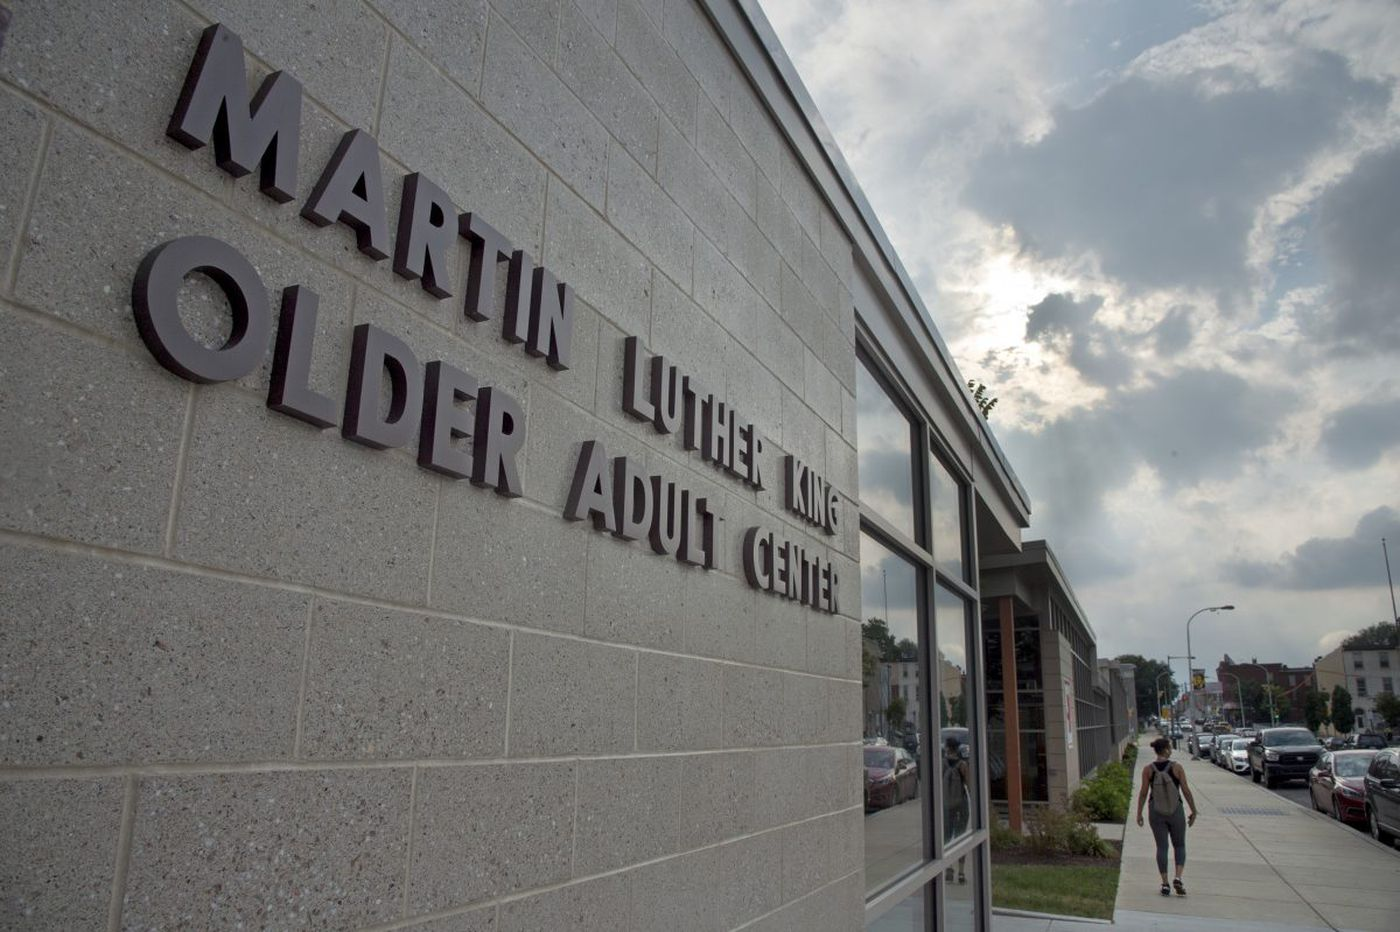 Why $4.3 million senior center sits empty months after dedication